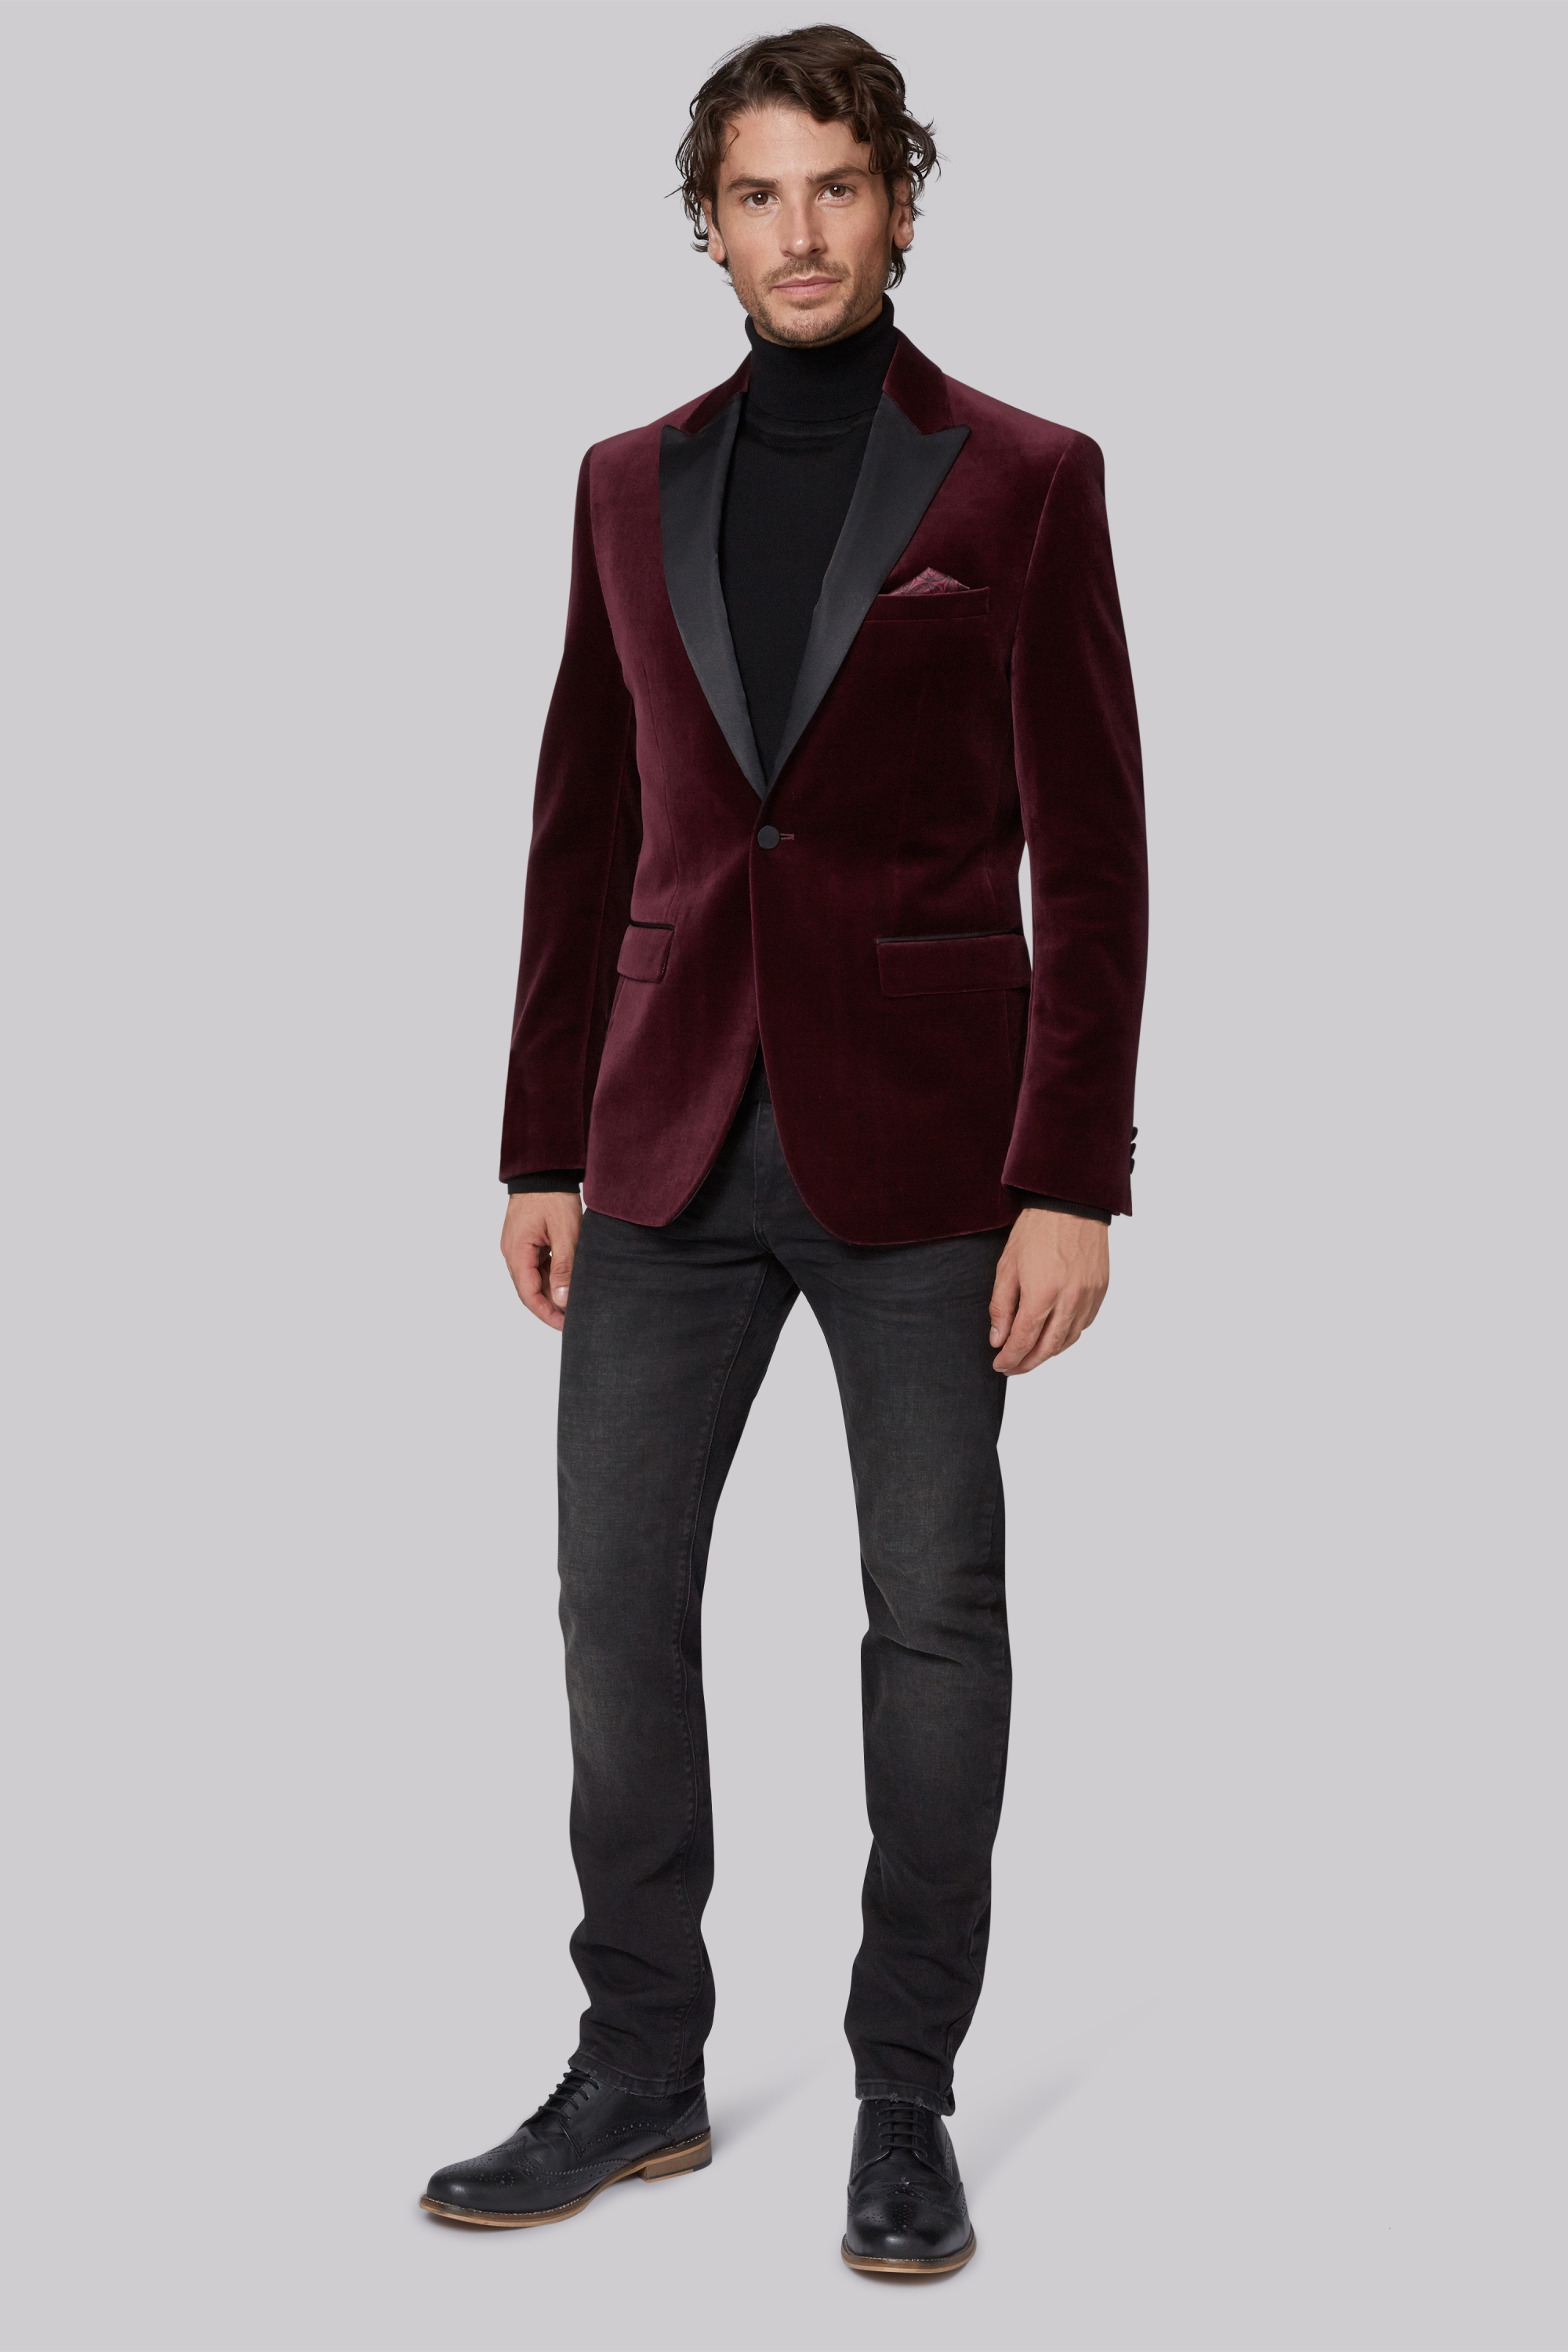 Men's Burgundy Velvet Smoking Jacket Double Breasted Evening Hosting Party Wear